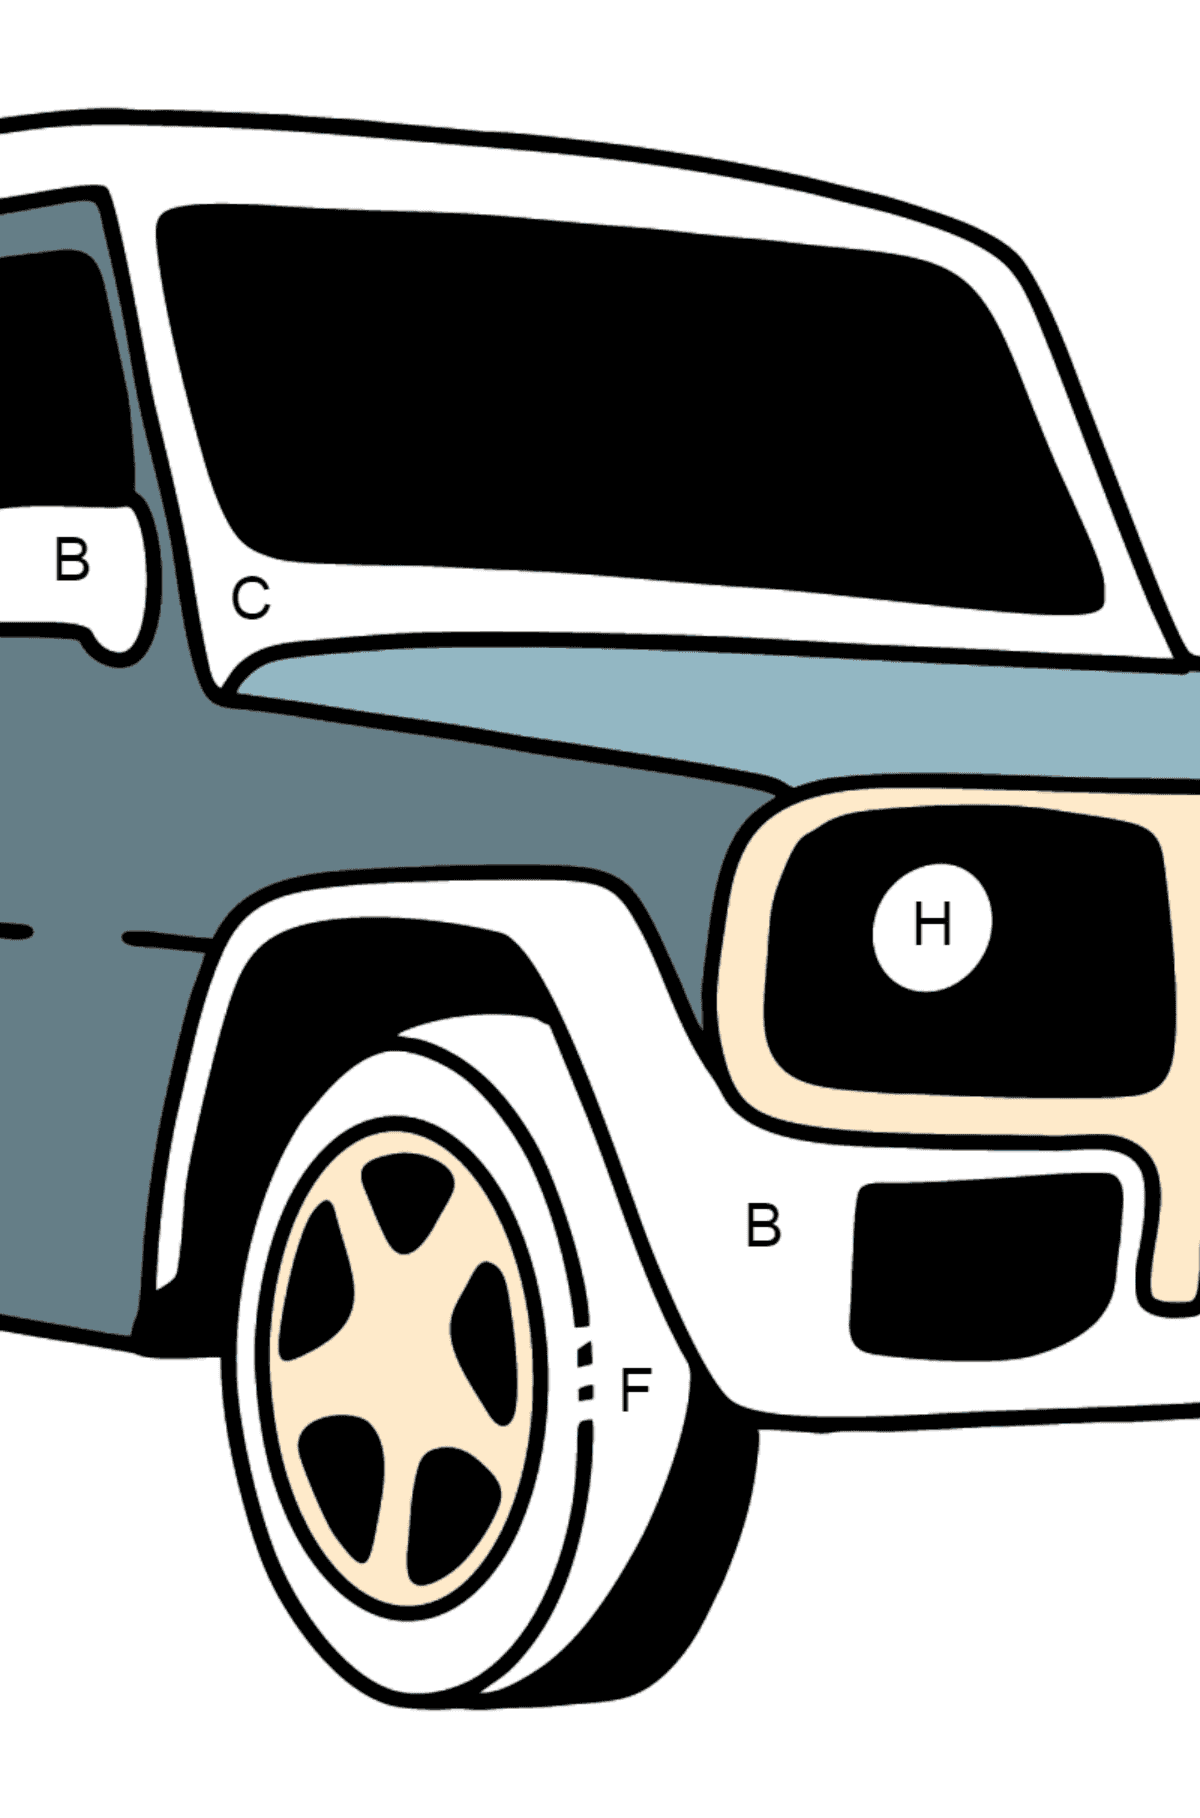 Mercedes-Benz G-Class SUV coloring page - Coloring by Letters for Kids